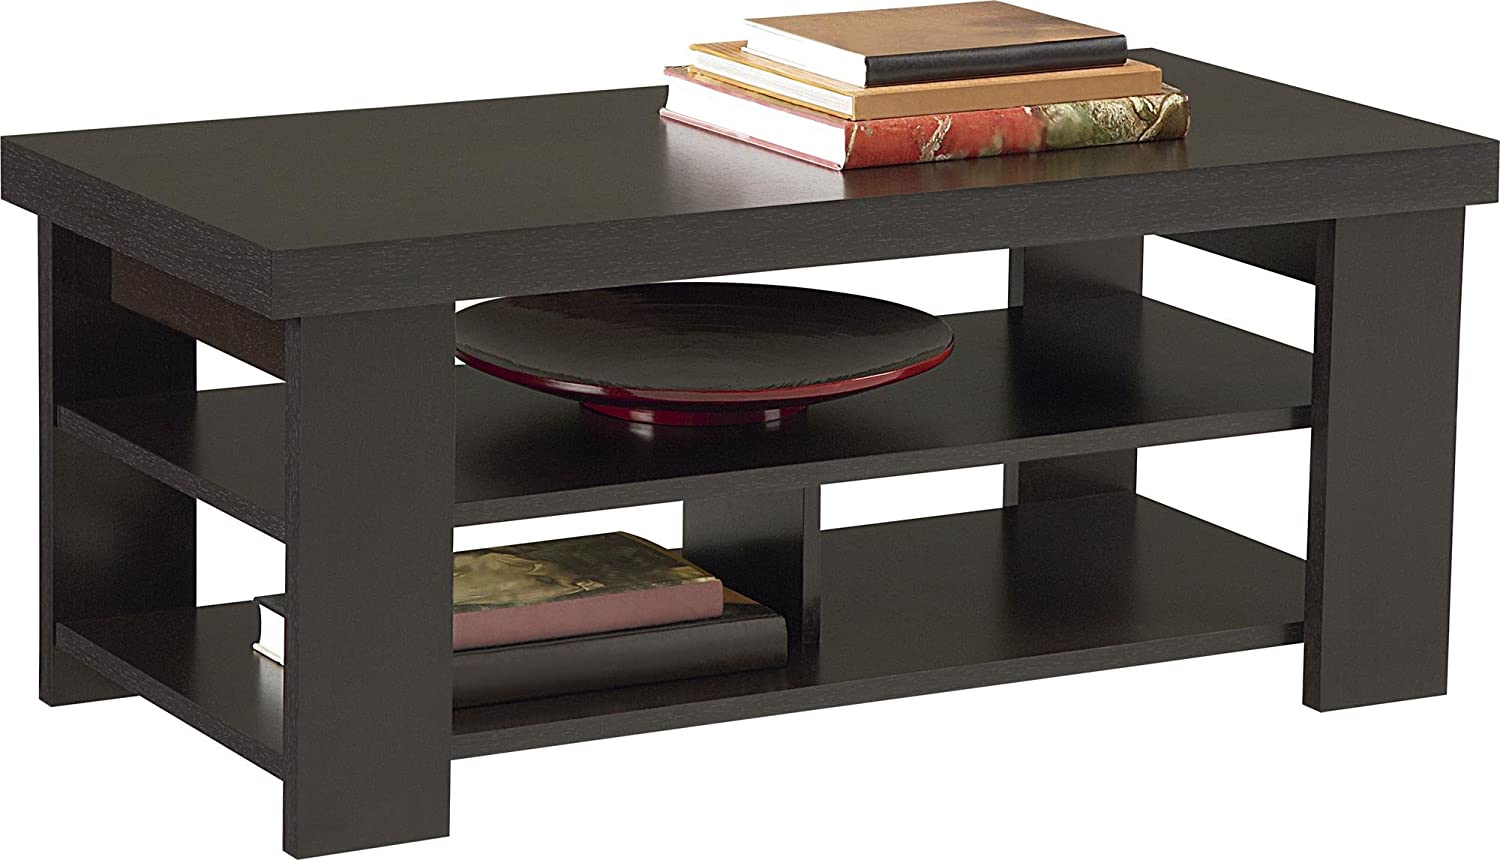 Black and wood coffee table - Black And Wood Coffee Table 6